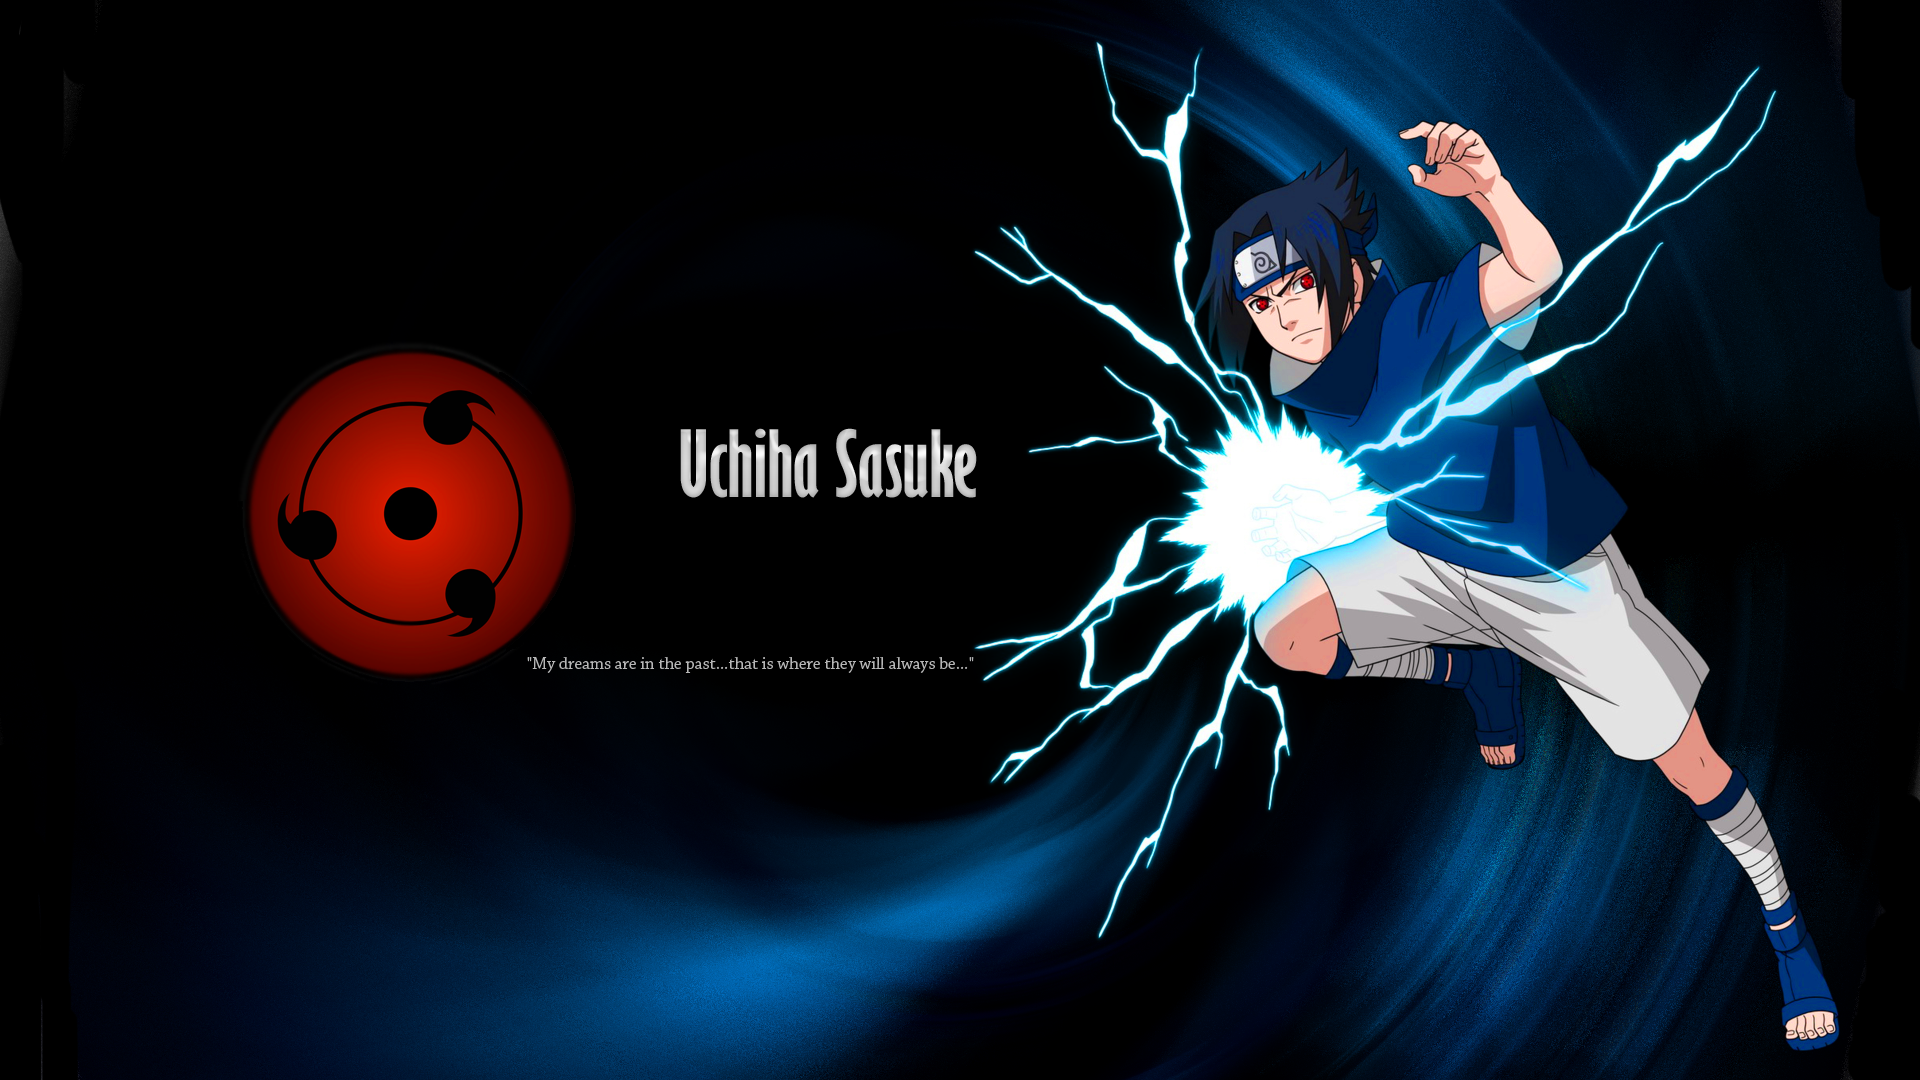 Naruto Shippuden Wallpaper PC 5589 Wallpaper  Cool Walldiskpaper.com